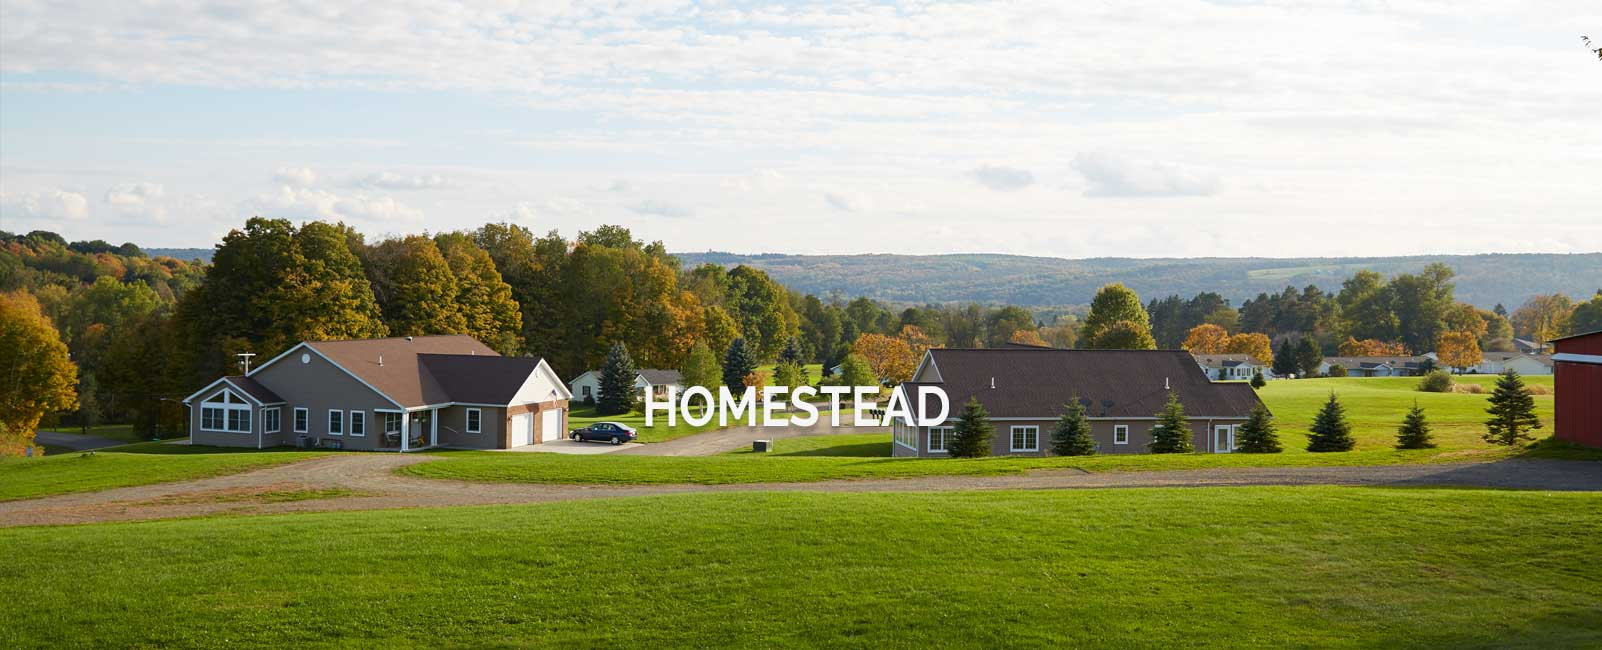 homestead-independent-living-retirement-housing-western-new-york